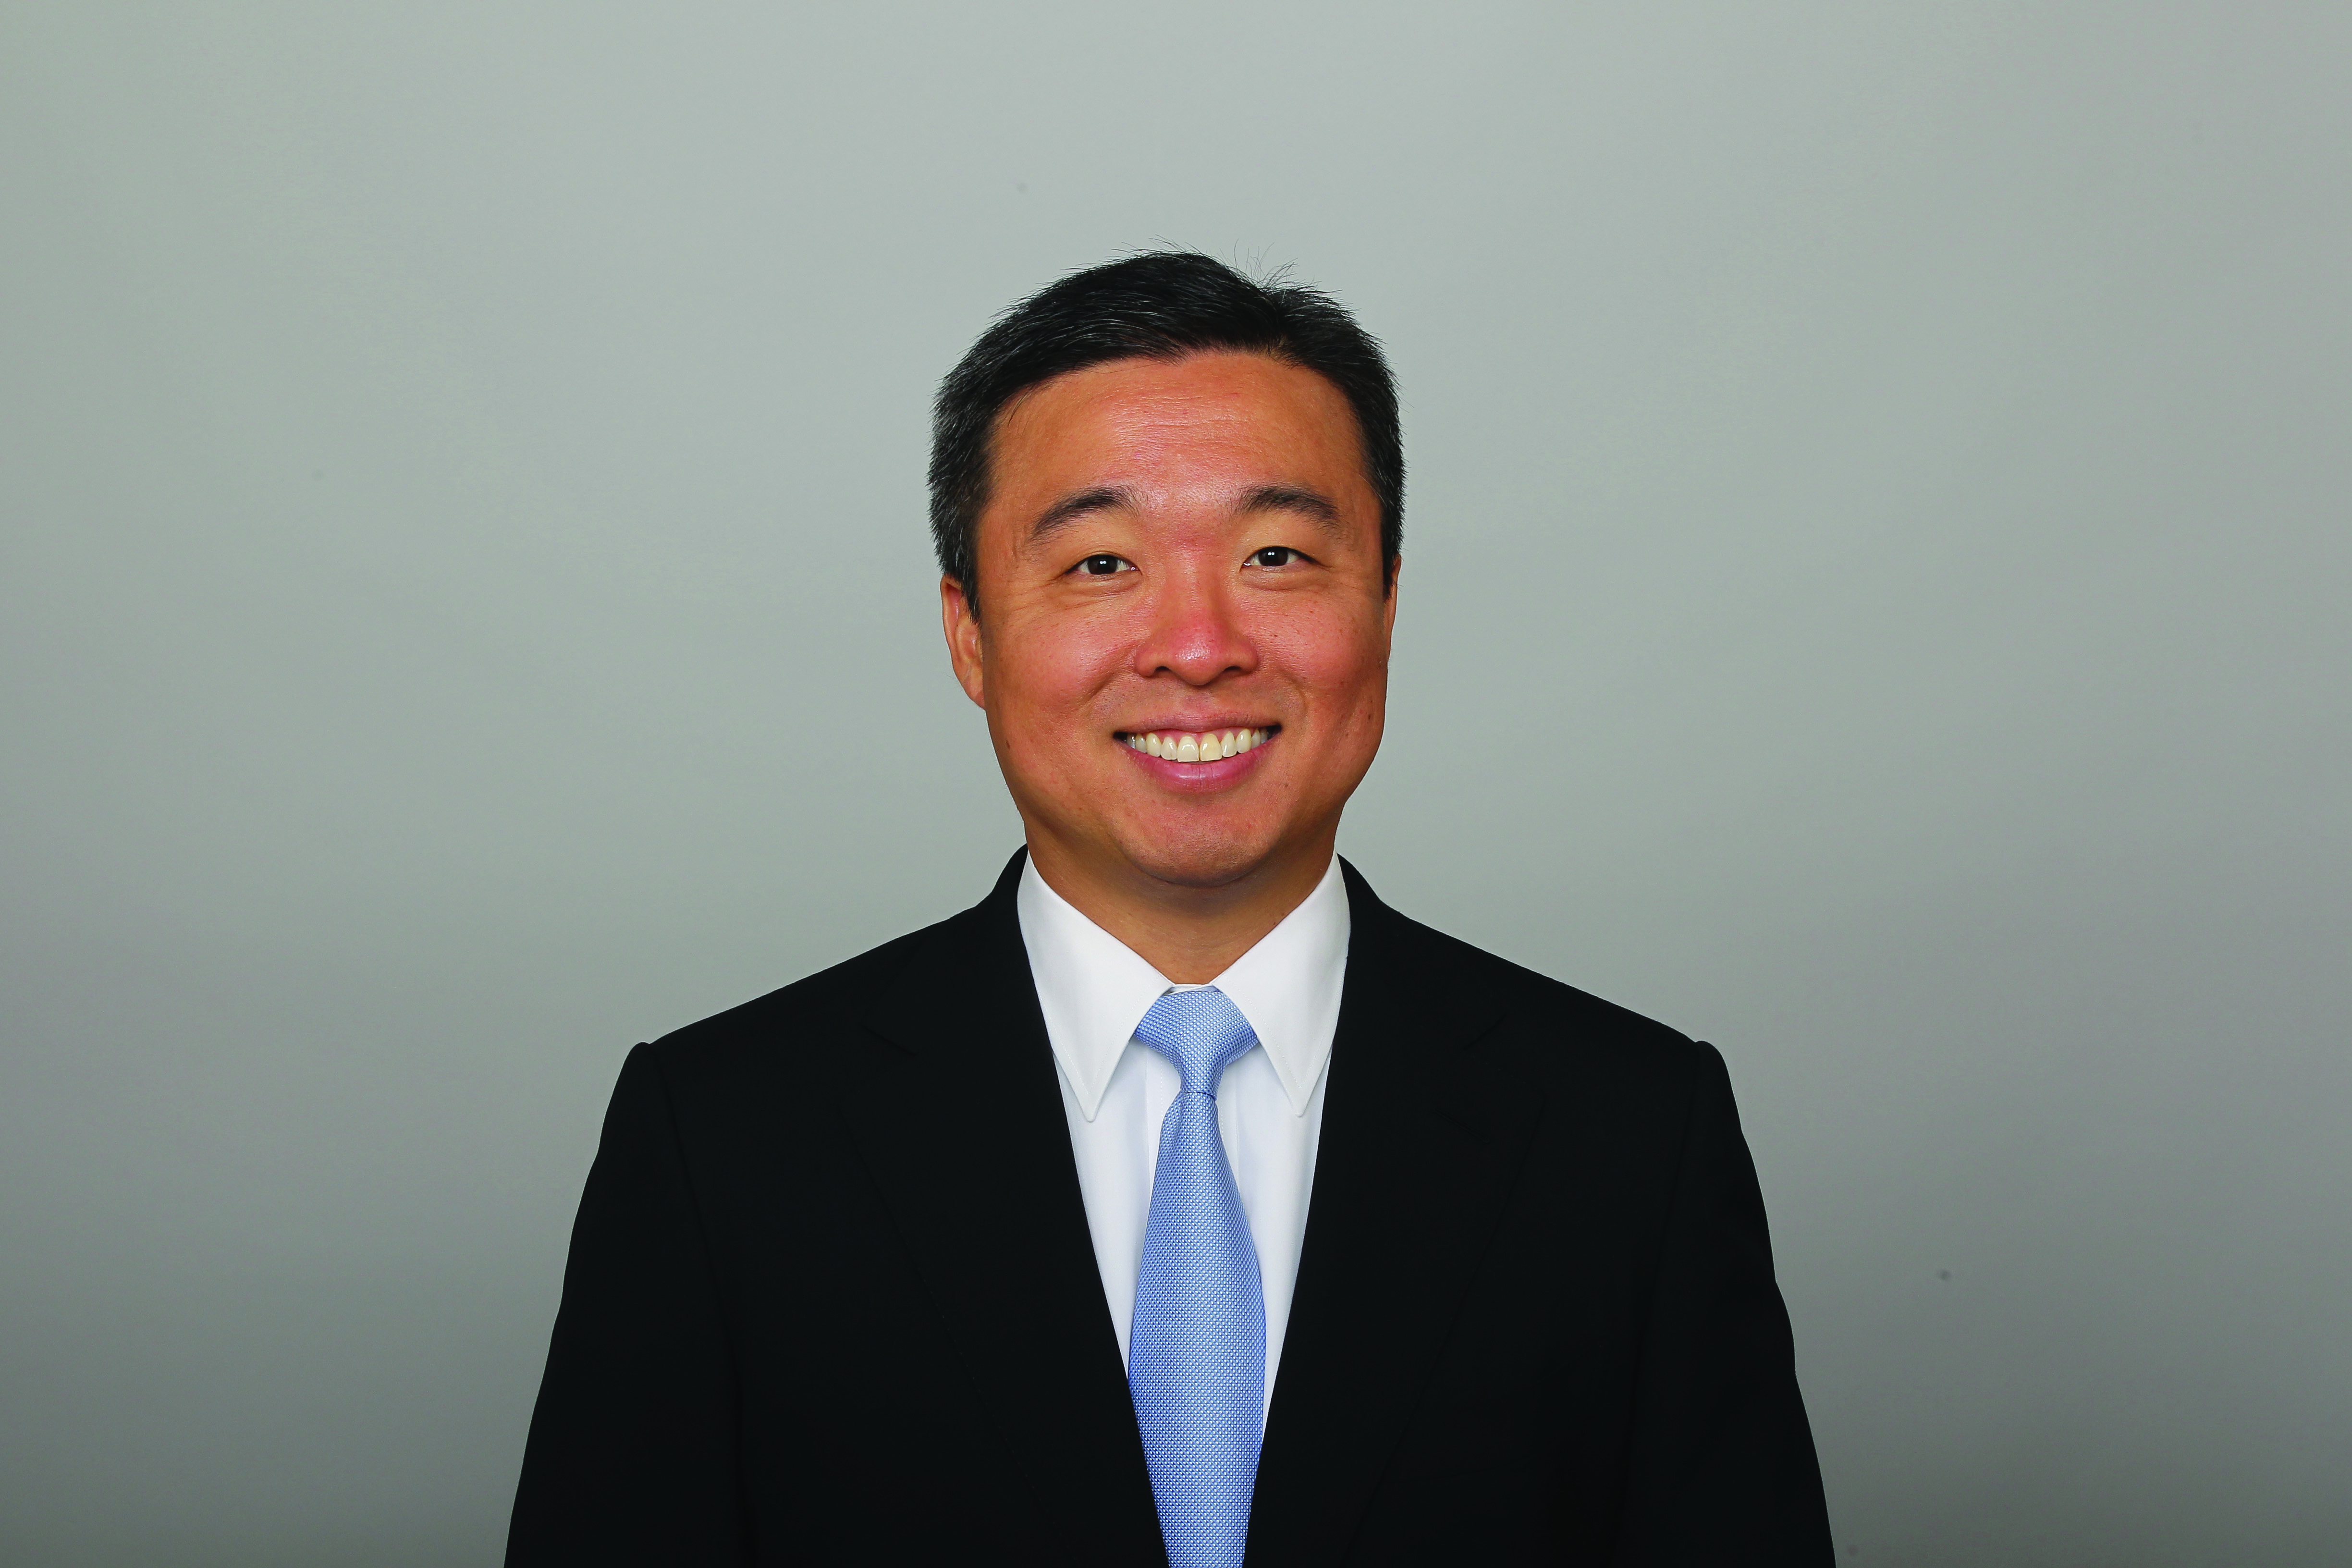 Gideon Yu is the Executive Chairman at Bowers & Wilkins and the co-owner of the San Francisco 49ers. Photo courtesy of the San Francisco 49ers.